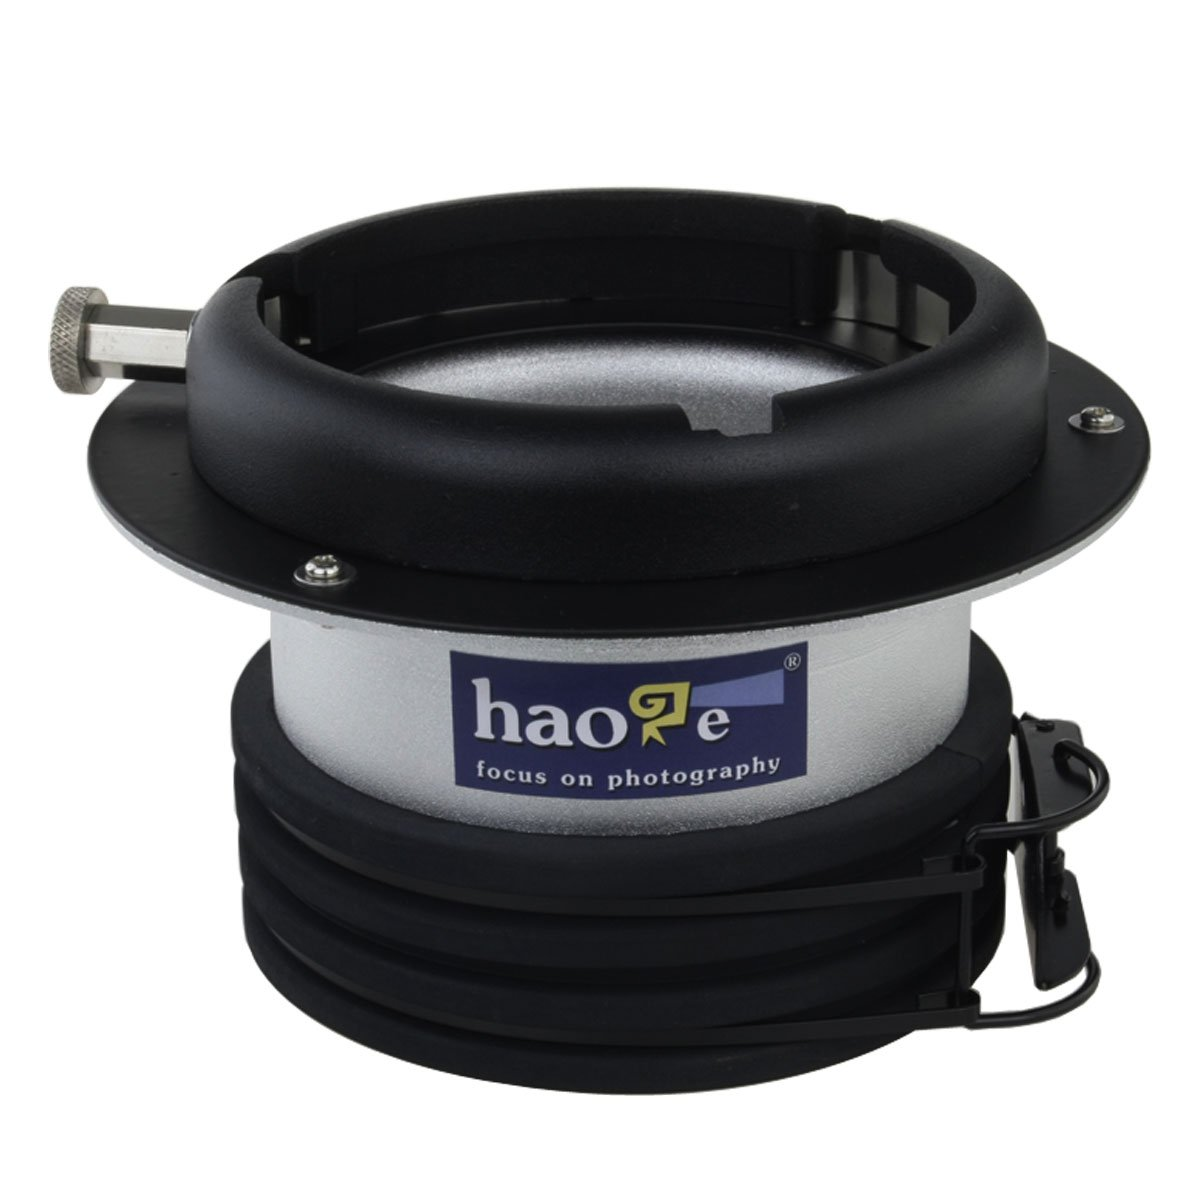 Haoge Profoto to Bowens Mount Speedring Ring Adapter Converter for Studio Light Strobe Flash